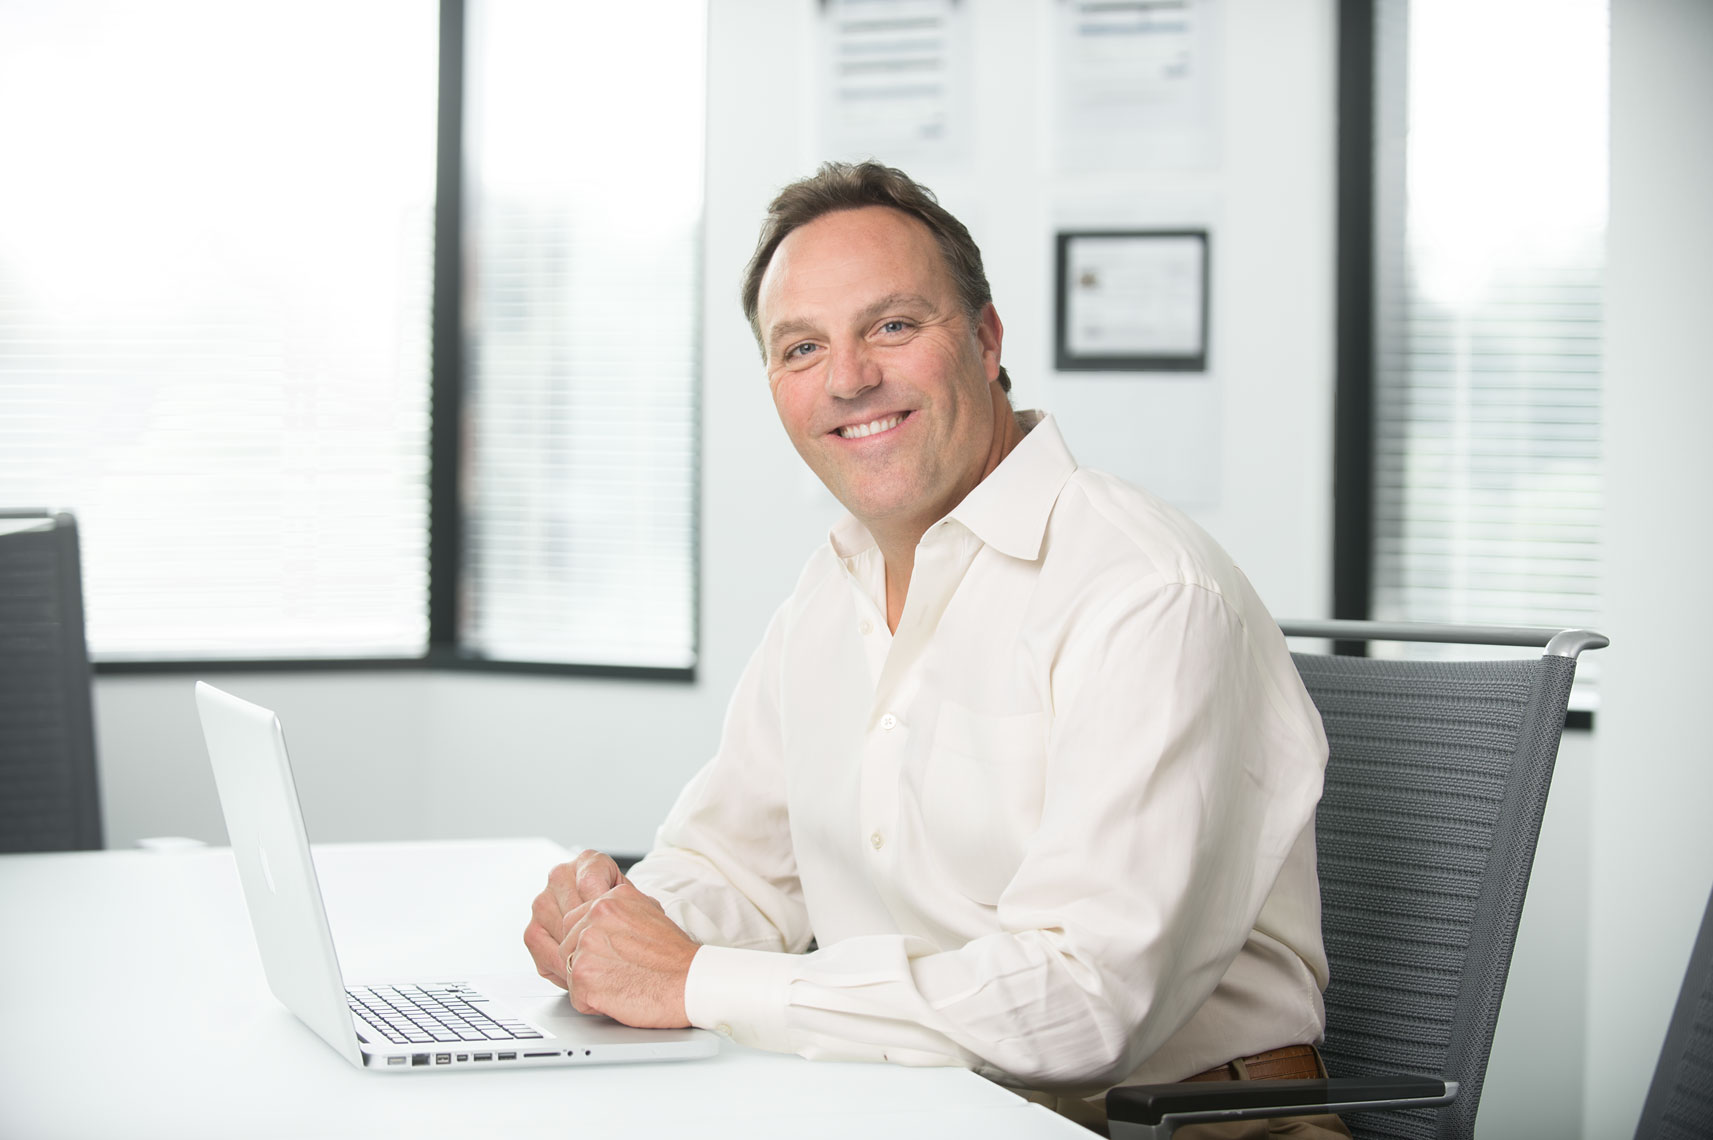 A man smiling with a laptop at a board room conference table